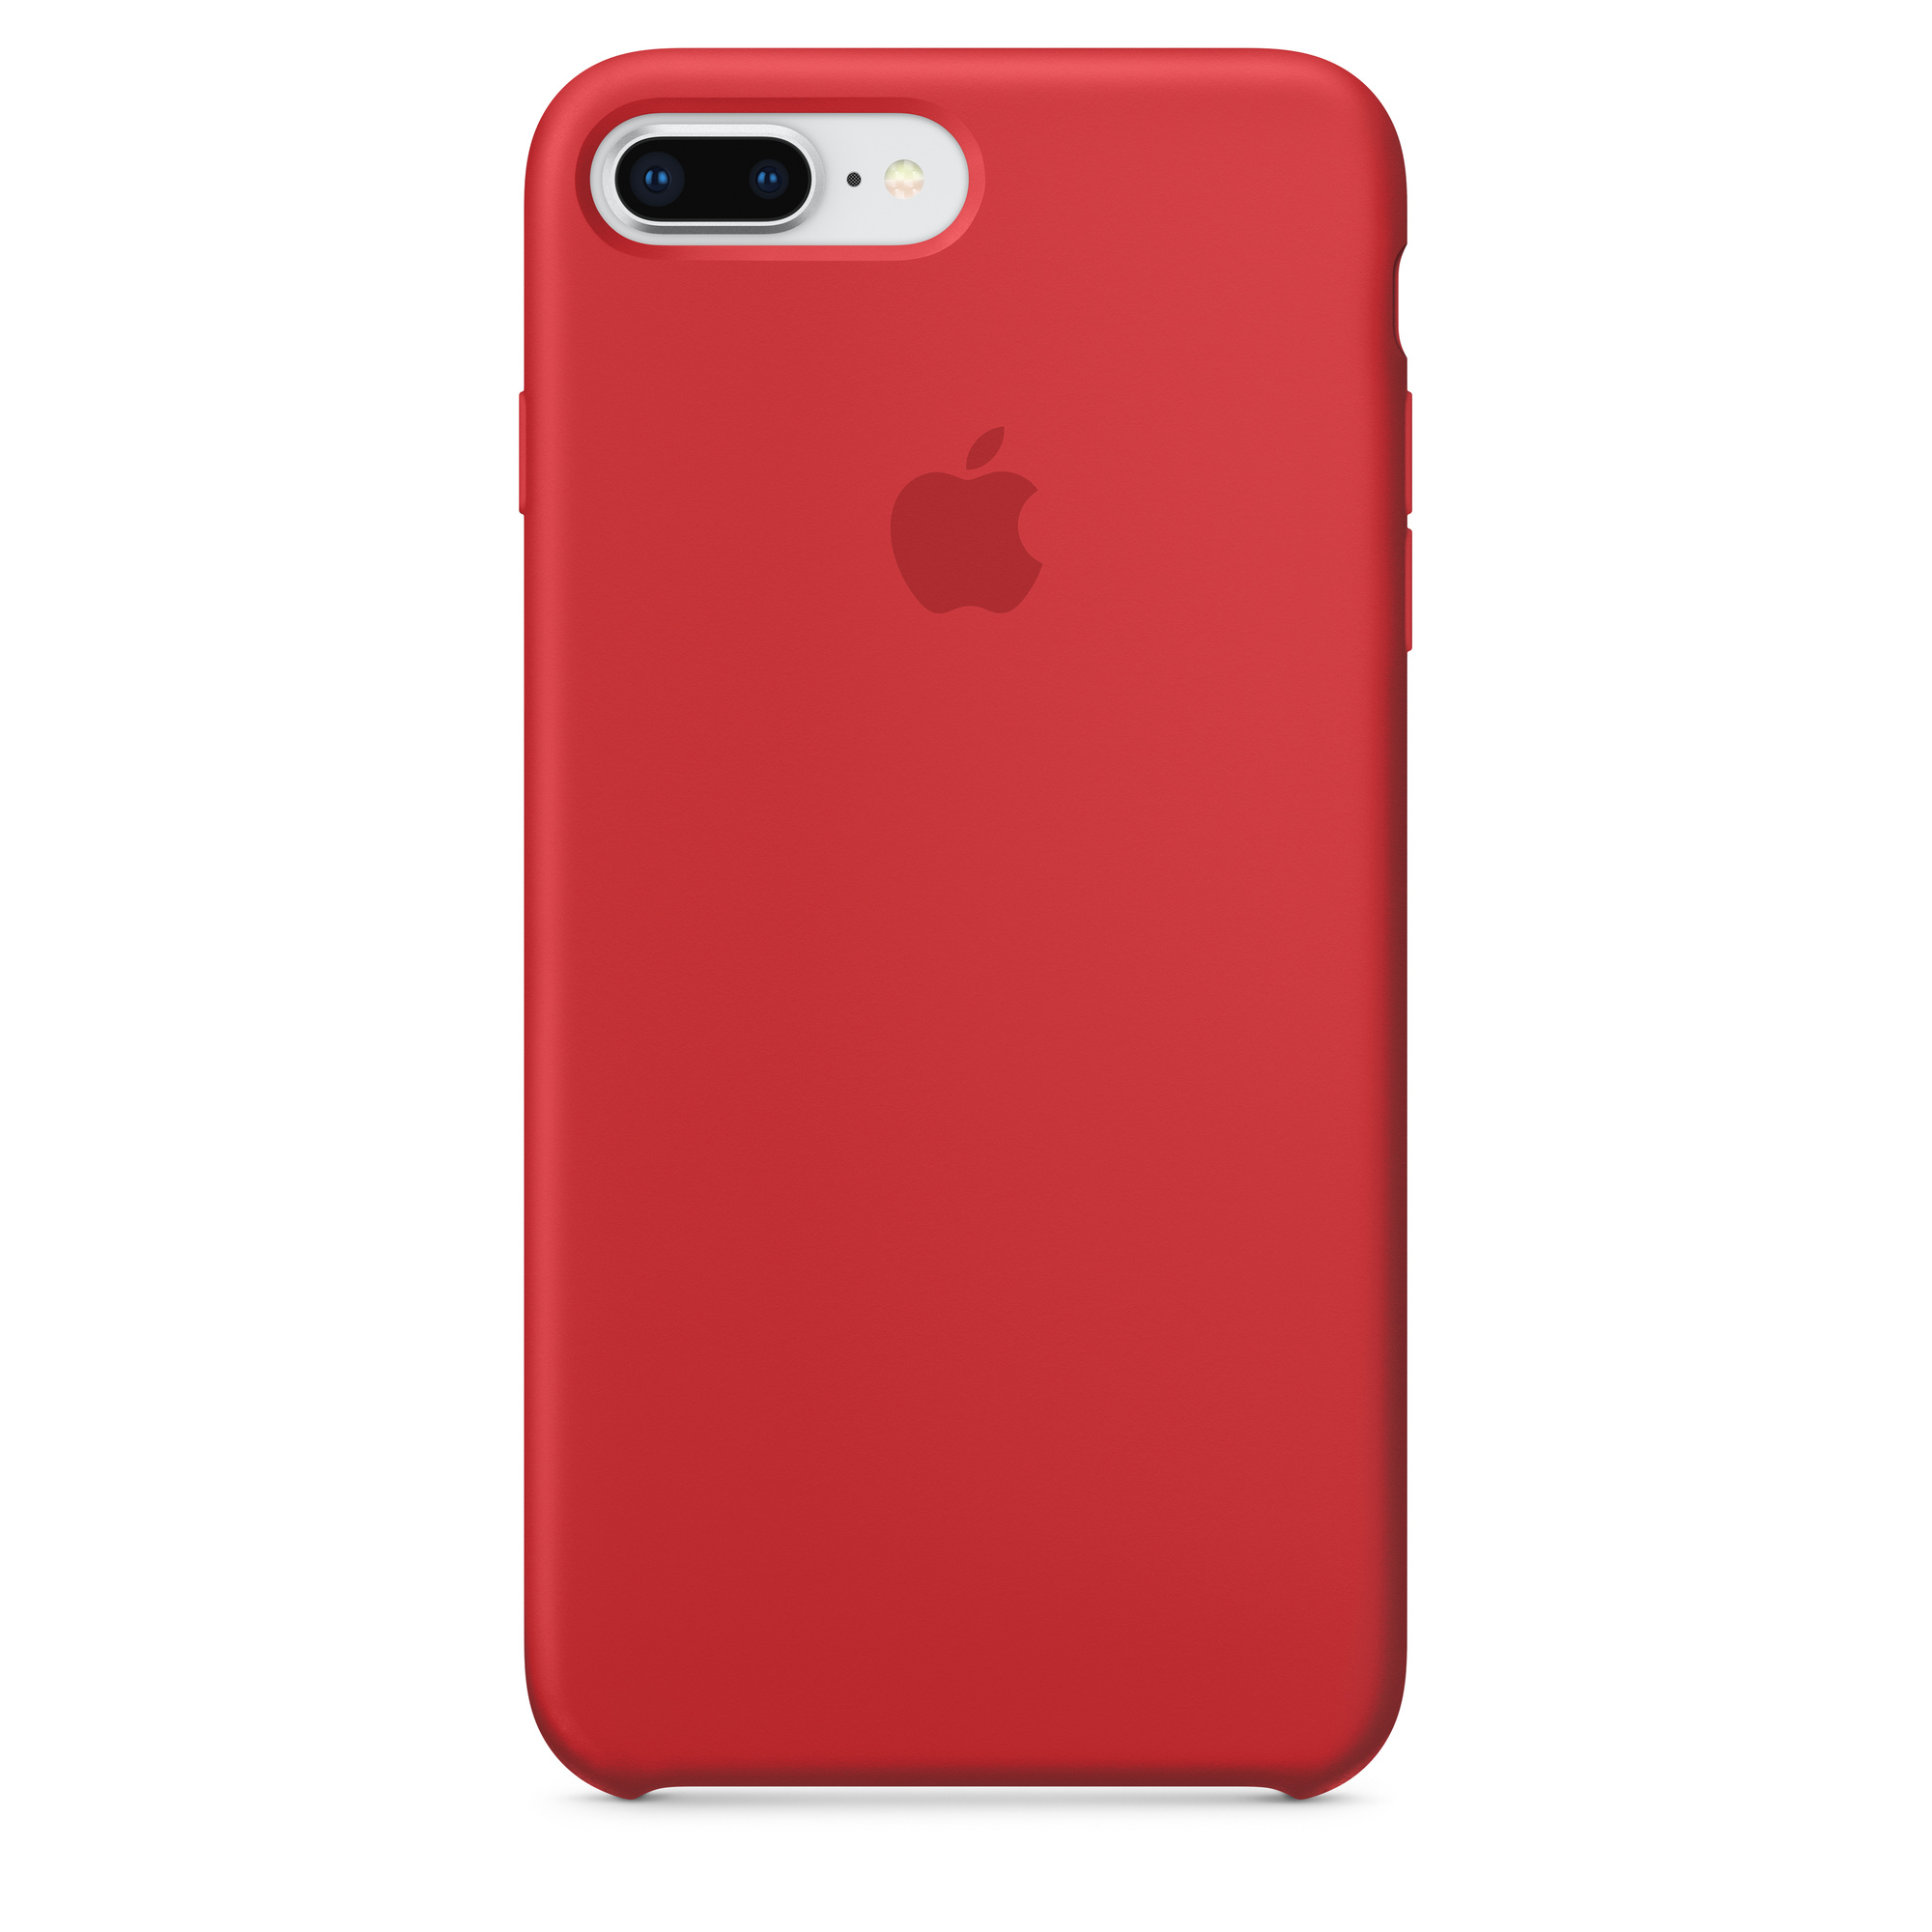 sports shoes e4355 6e426 iPhone 8 Plus / 7 Plus Silicone Case - (PRODUCT)RED